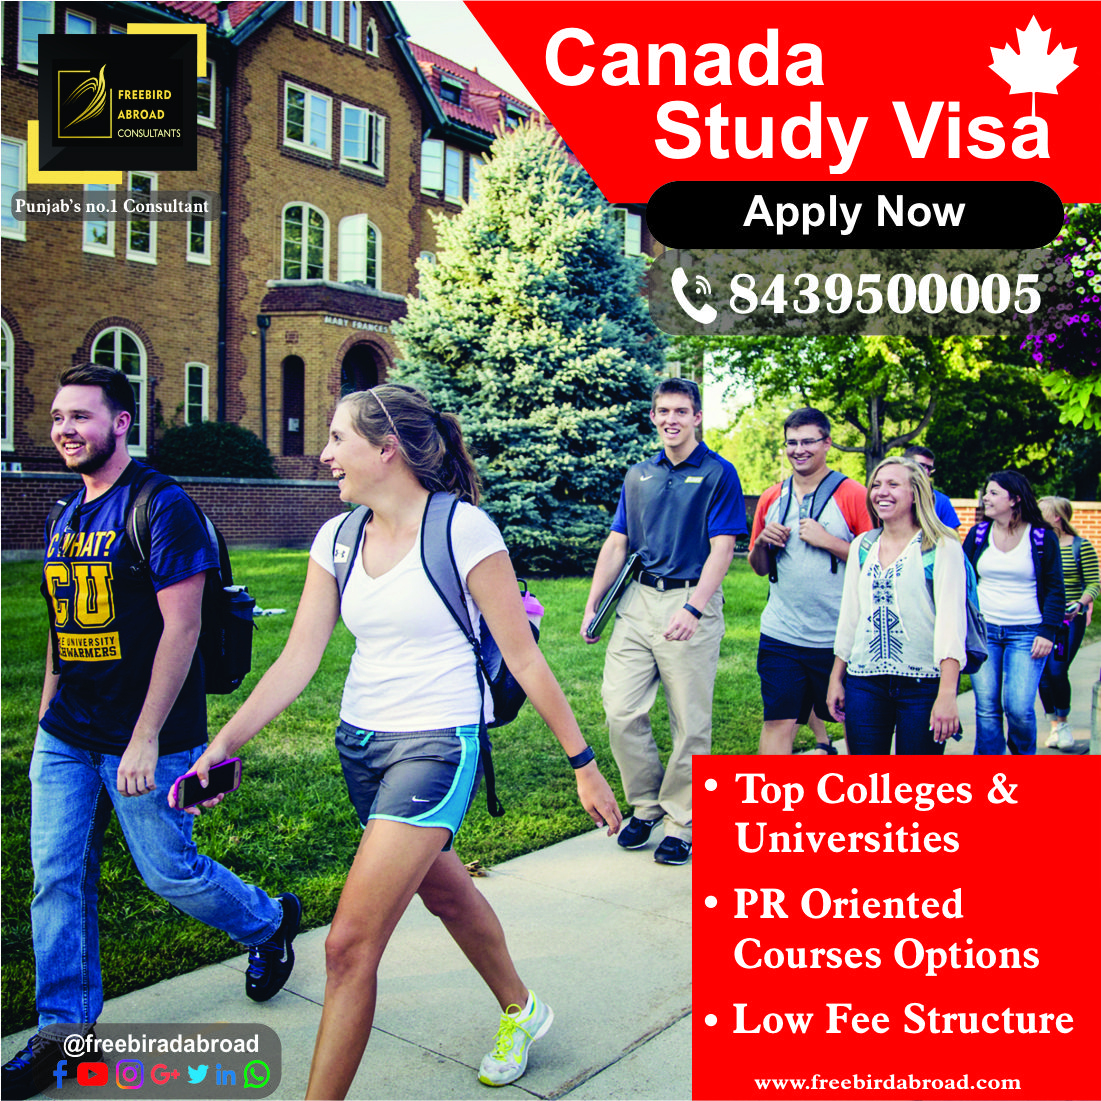 Apply for Canada Study Visa